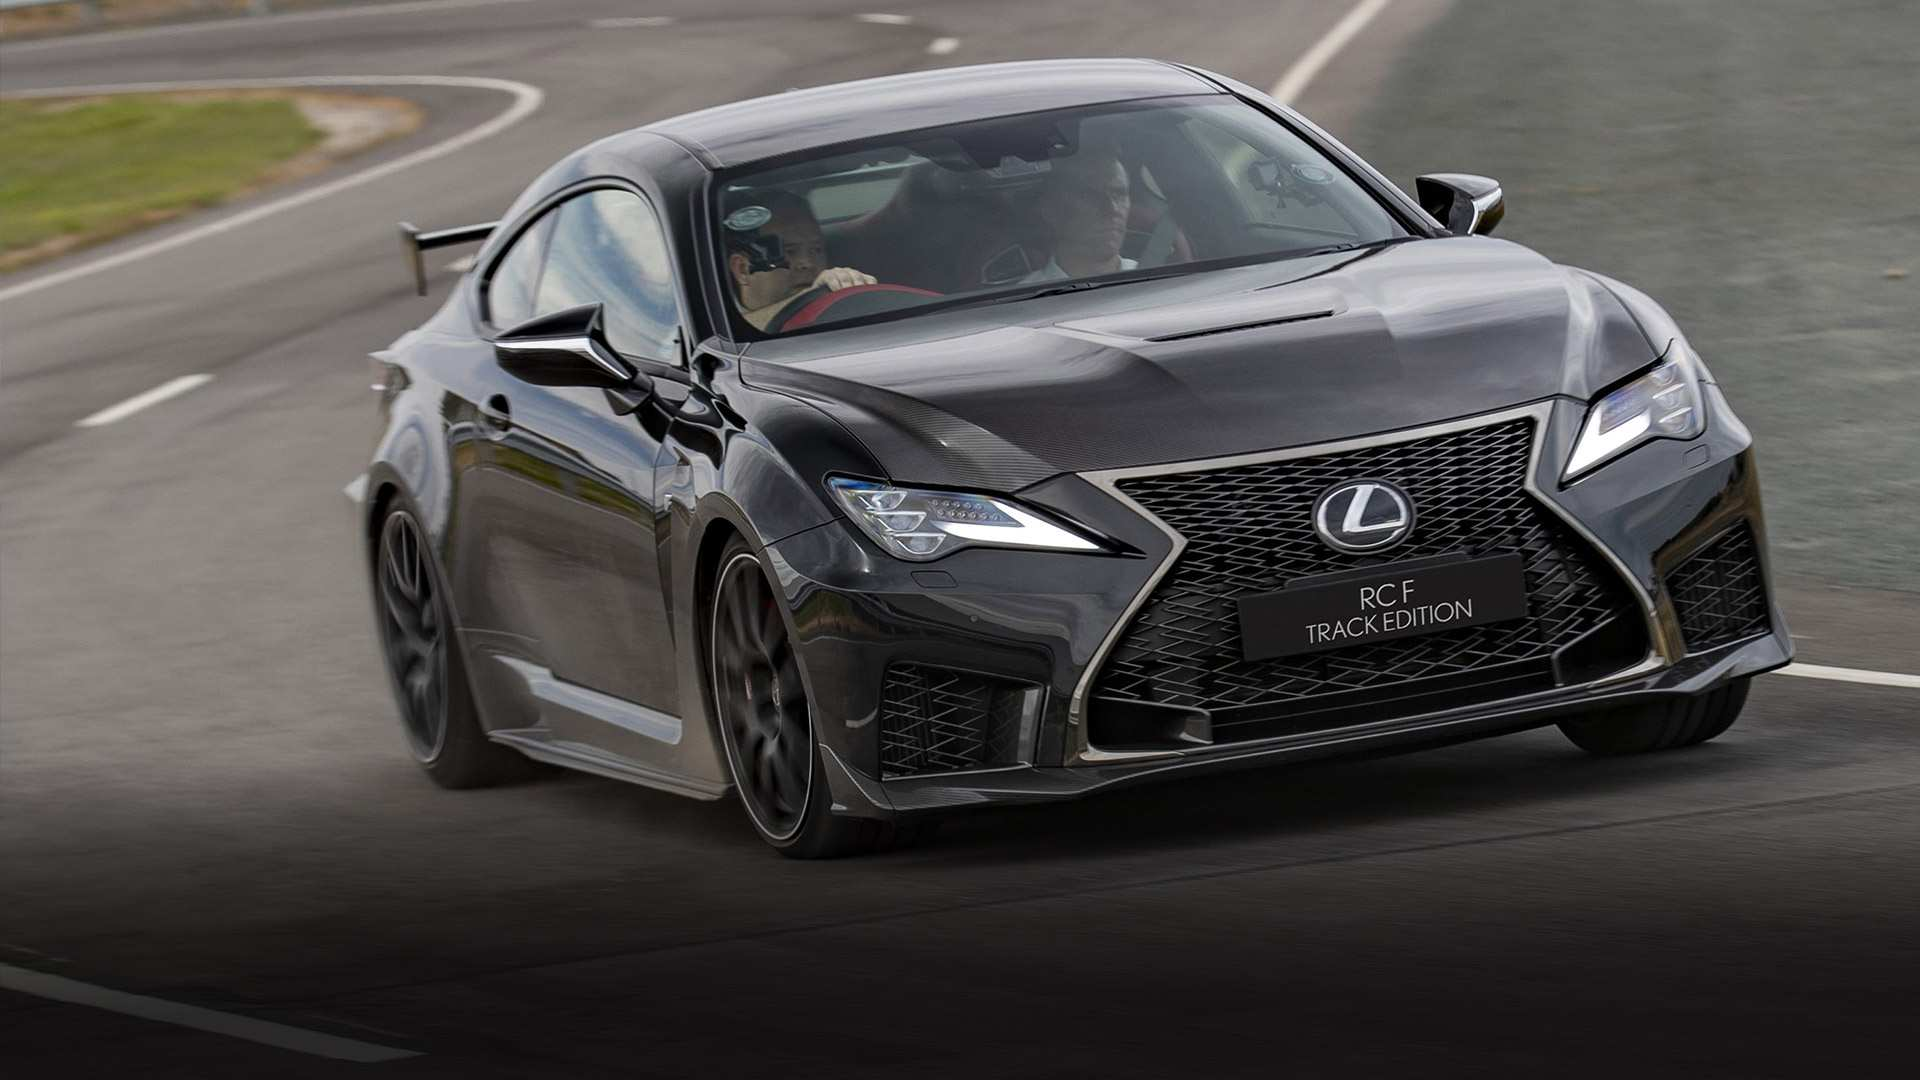 92 A Rcf Lexus 2019 Speed Test